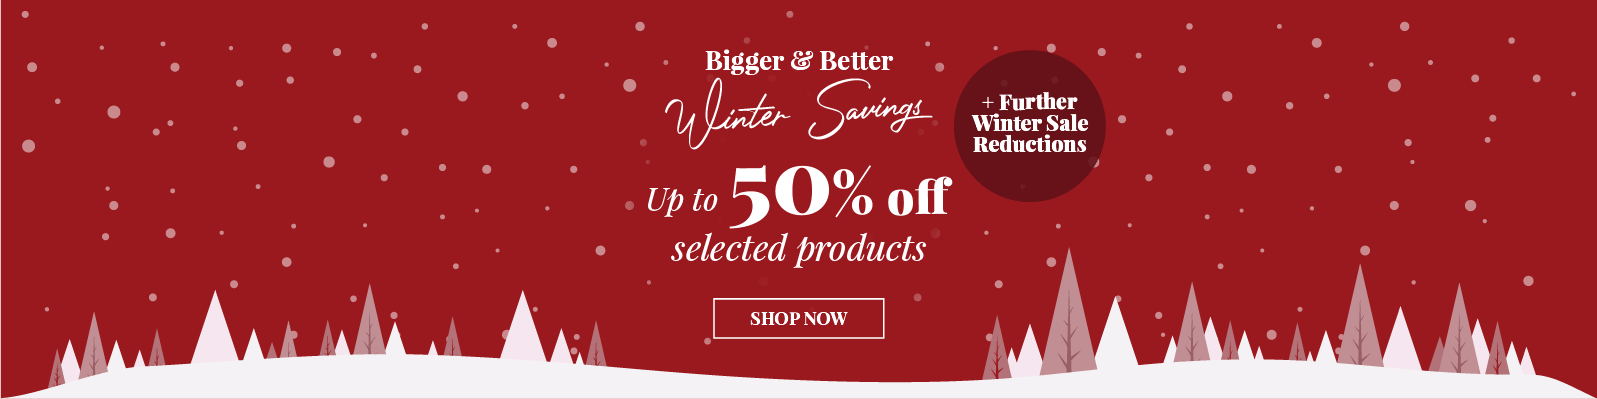 Wonderful Winter Deals Up to 50% off selected products Shop Now